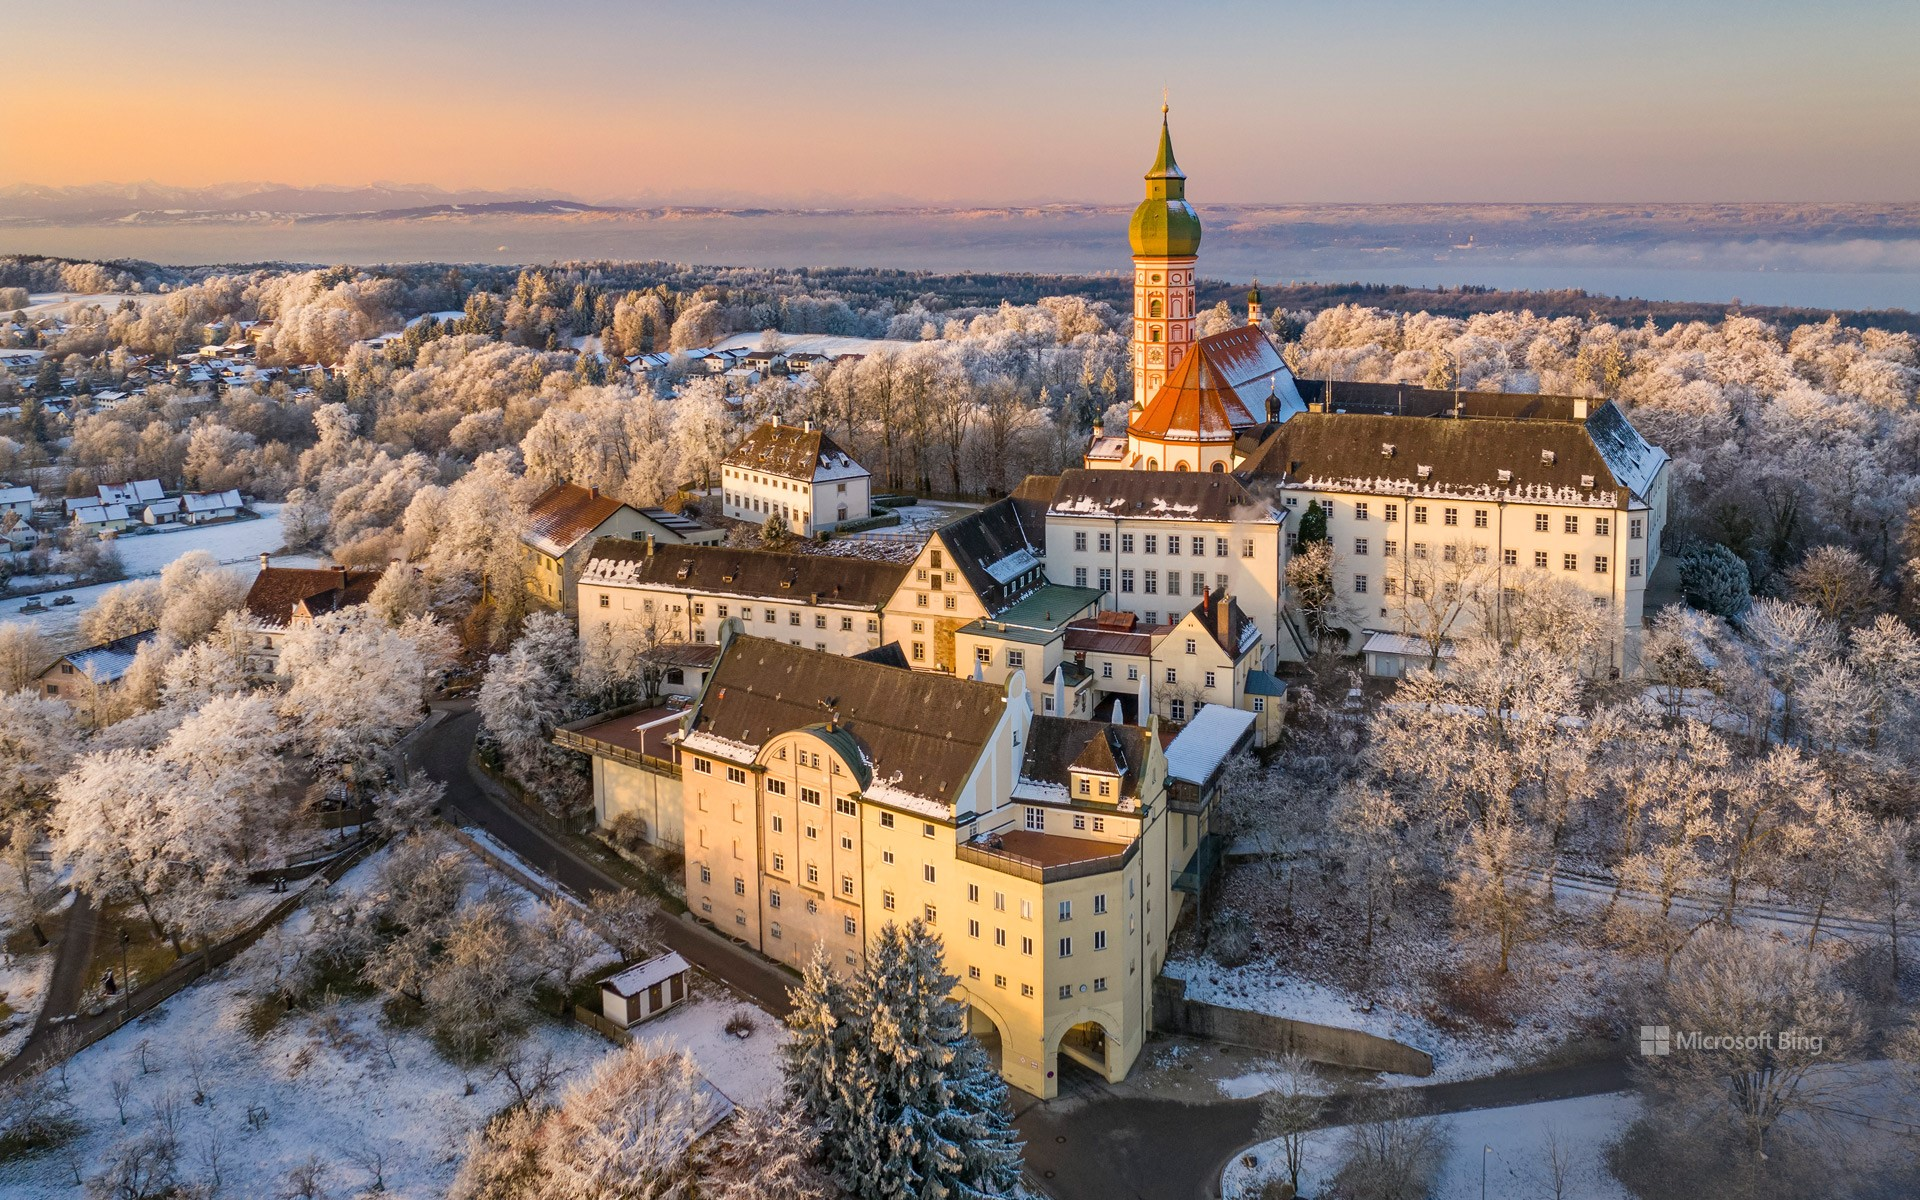 Winter morning mood at Andechs Monastery in Bavaria with a view of the Ammersee